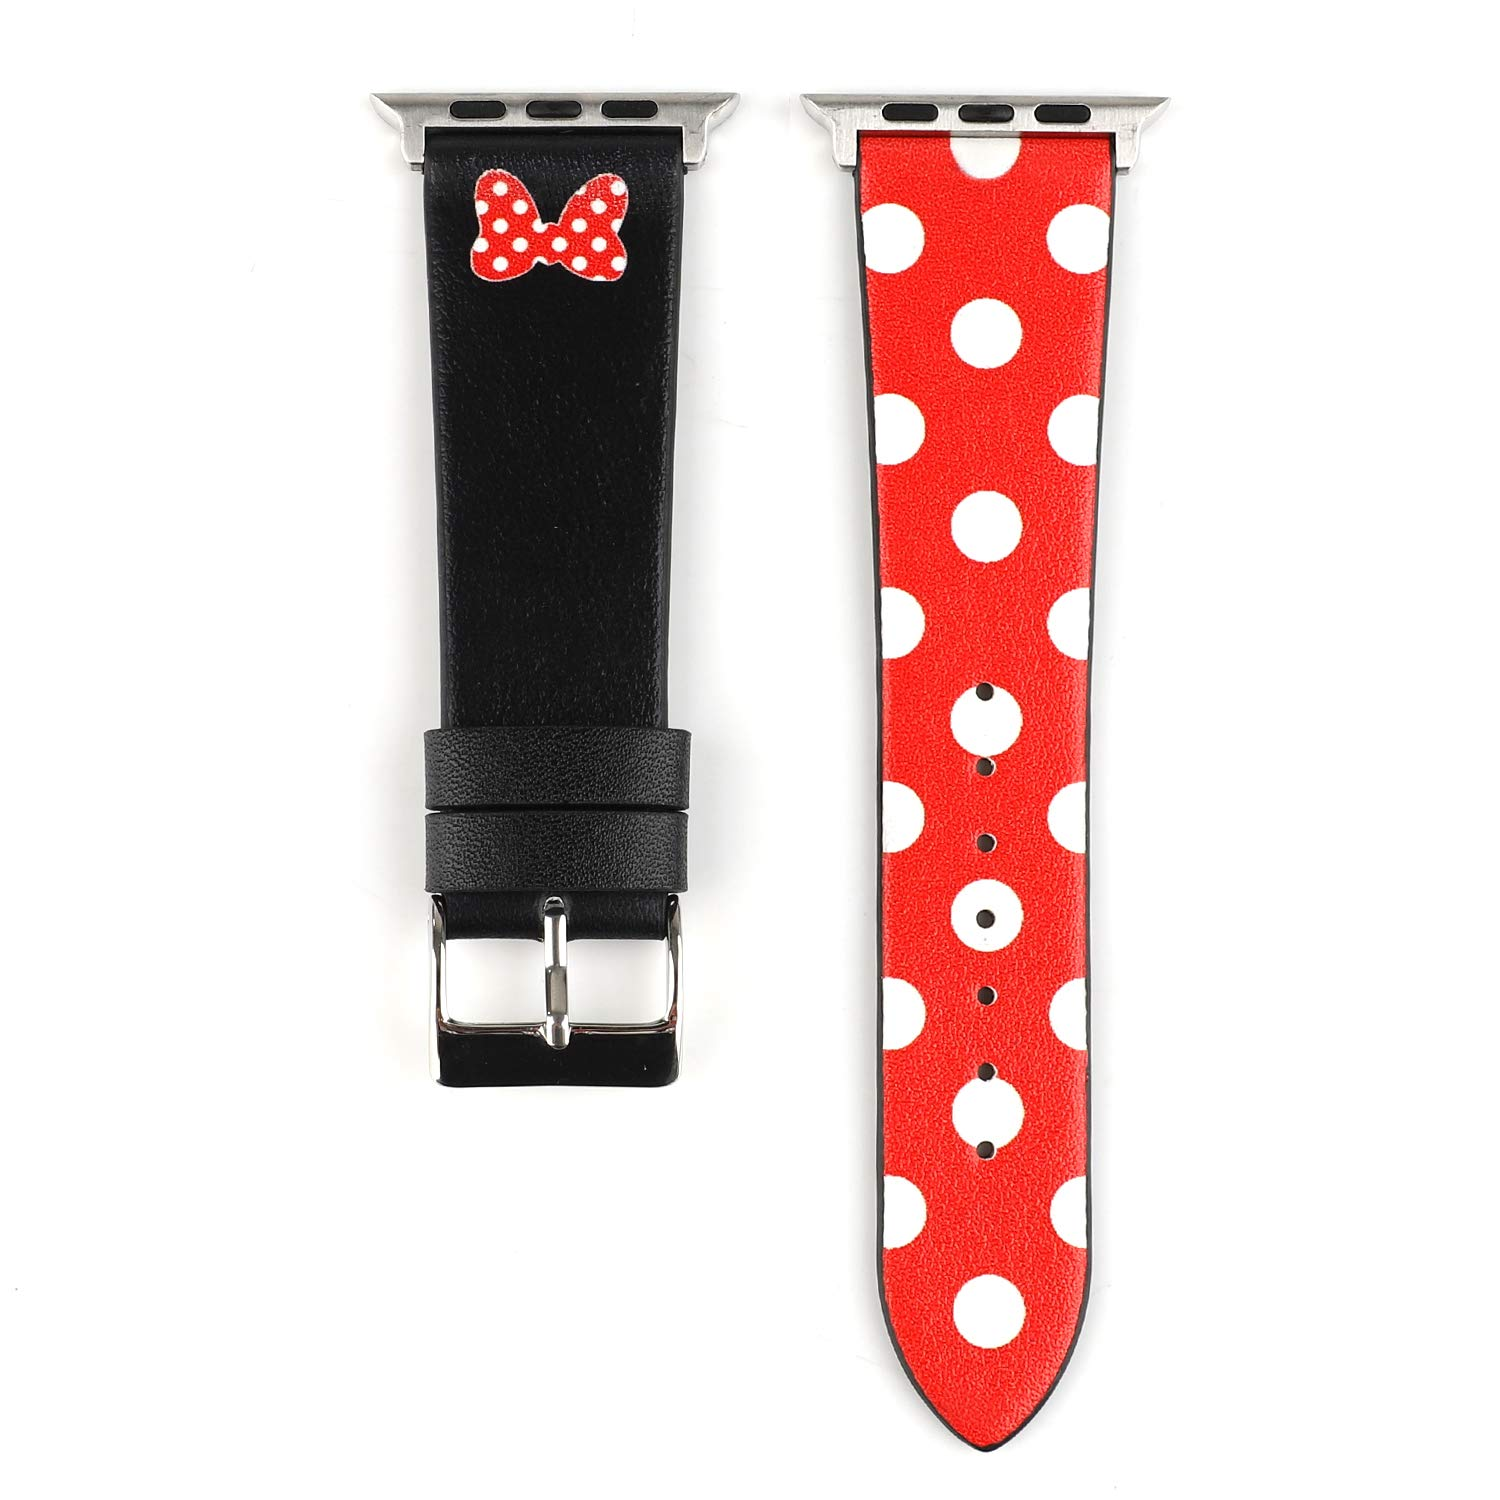 Lovely Polka Dot Leather Women Girls Replacement Band Compatible with Apple Watch Series 4 40mm and Series 3/2/ 1 38mm - Black & Red Bowknot